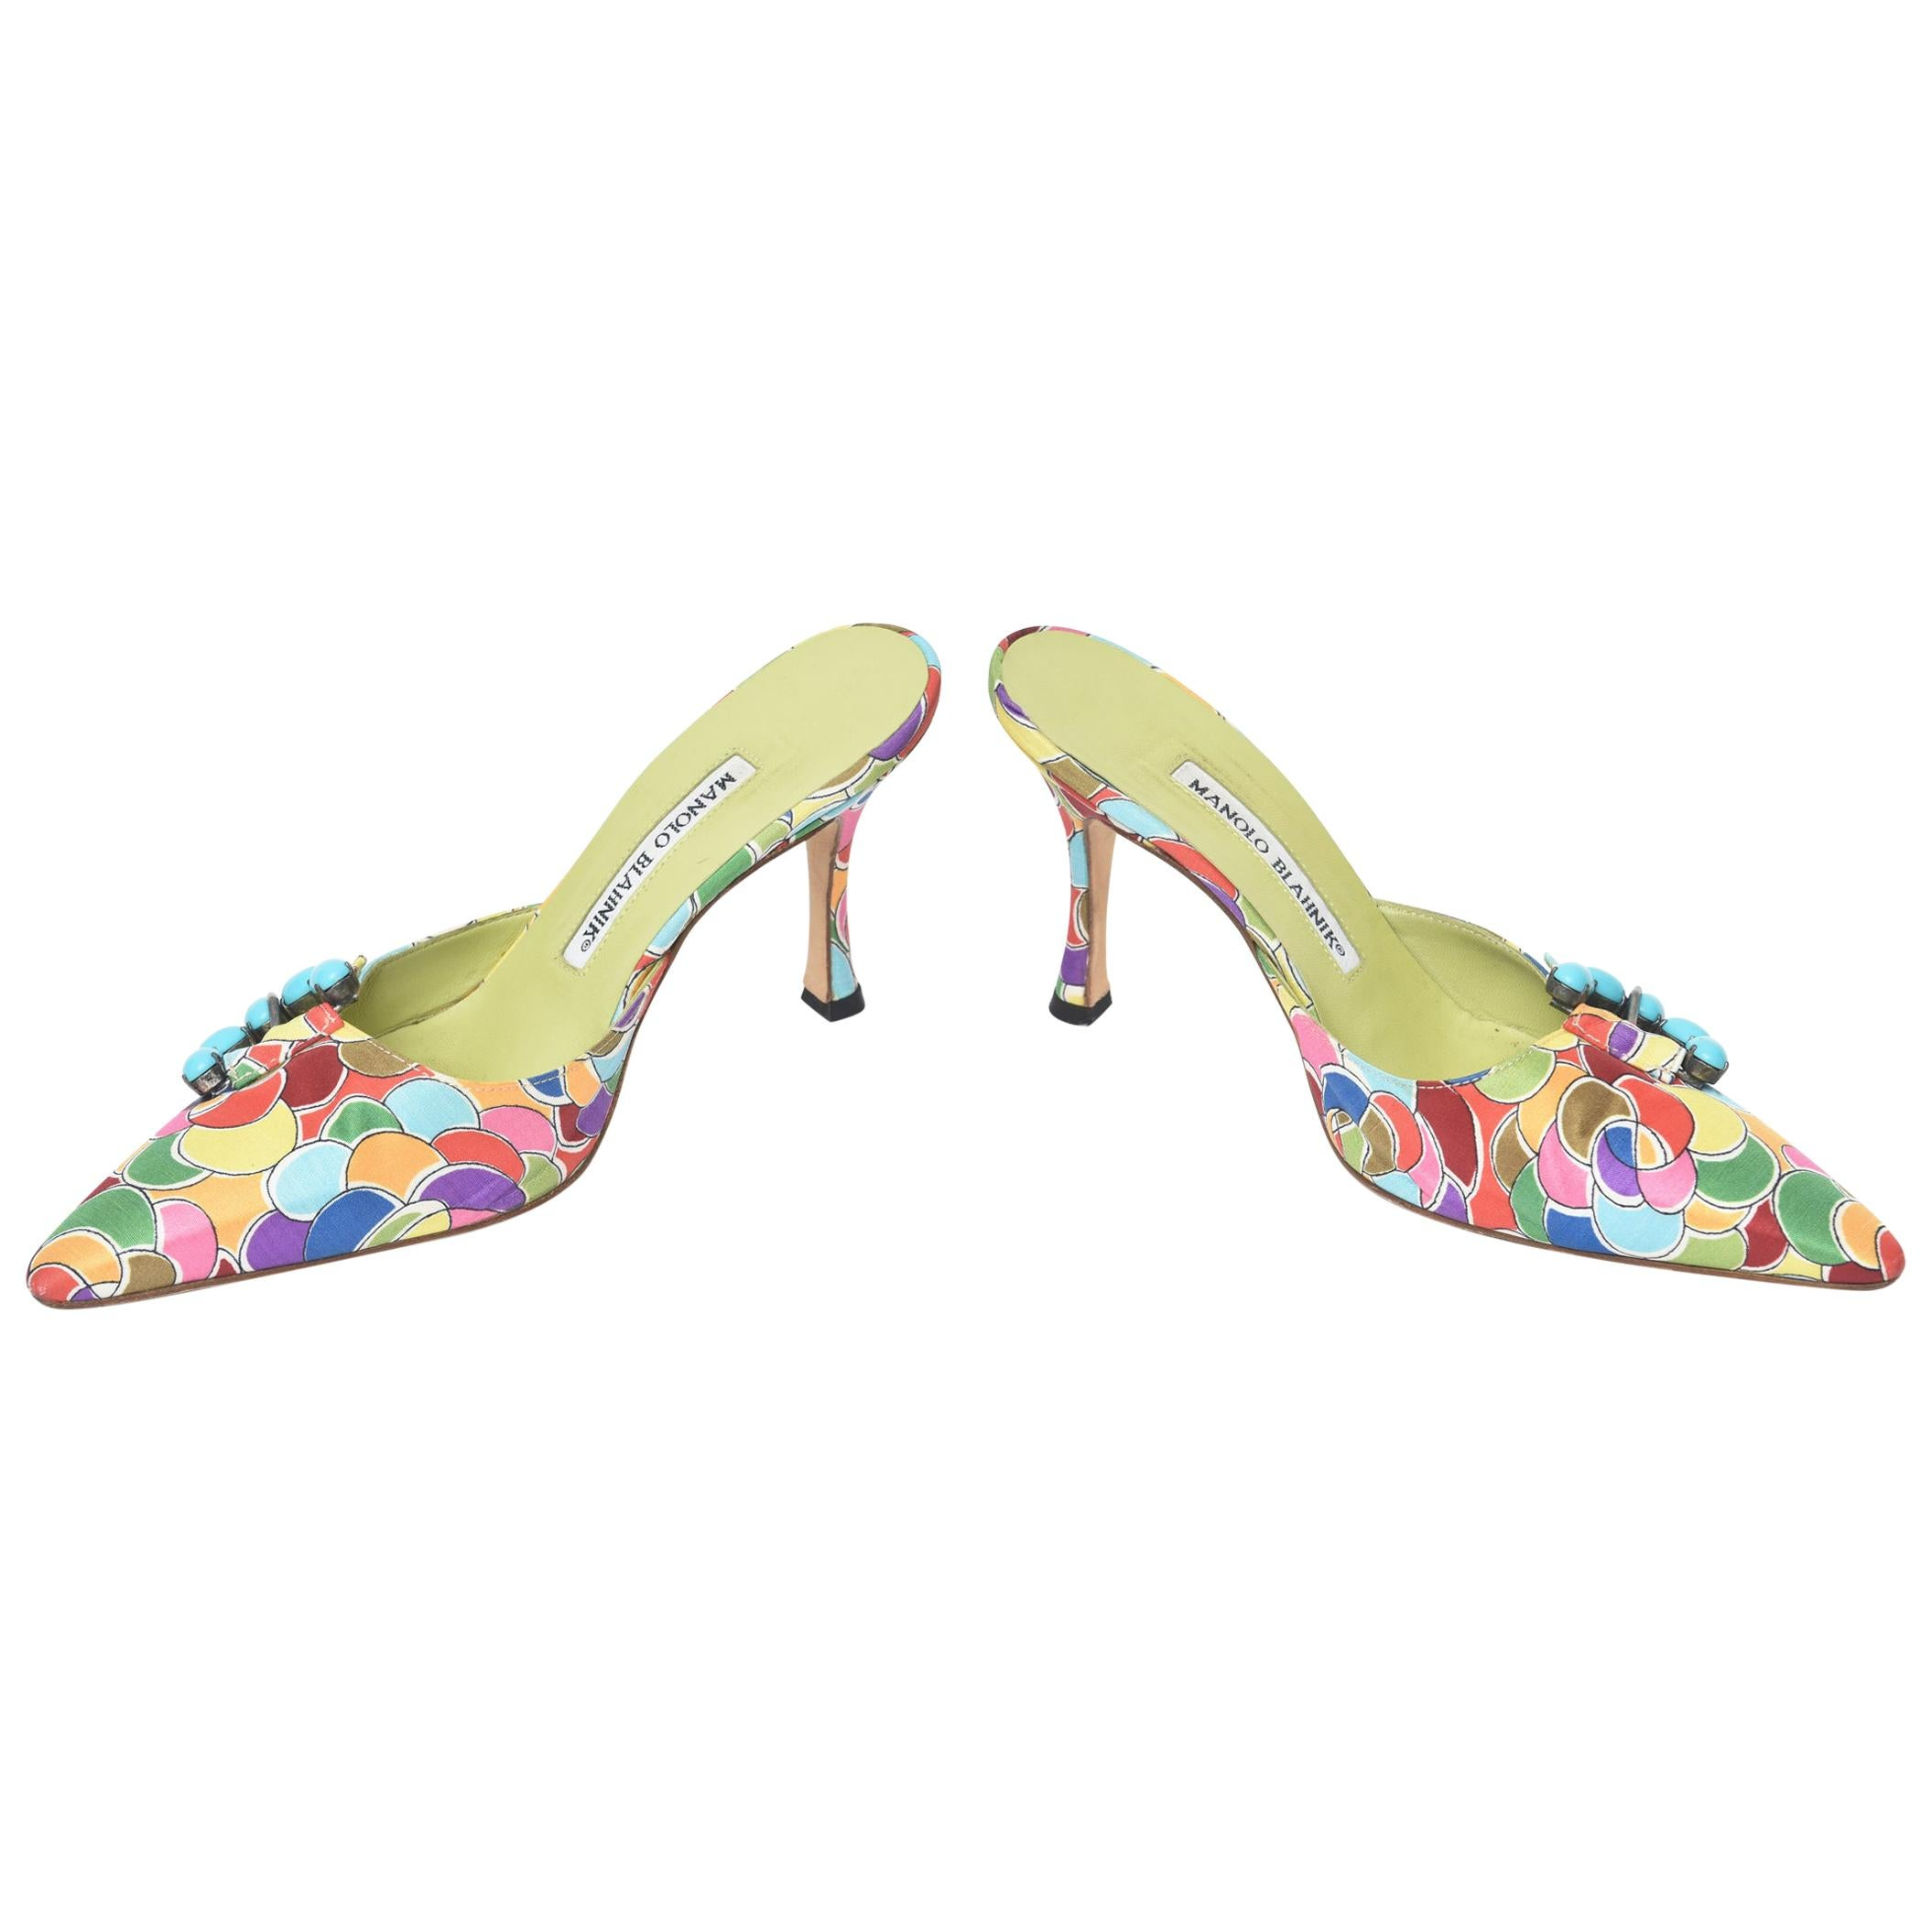 8b0e583588 Manolo Blahnik Grey Floral Brocade Pleat Detail Pointed Toe Mules Size 40.5  For Sale at 1stdibs